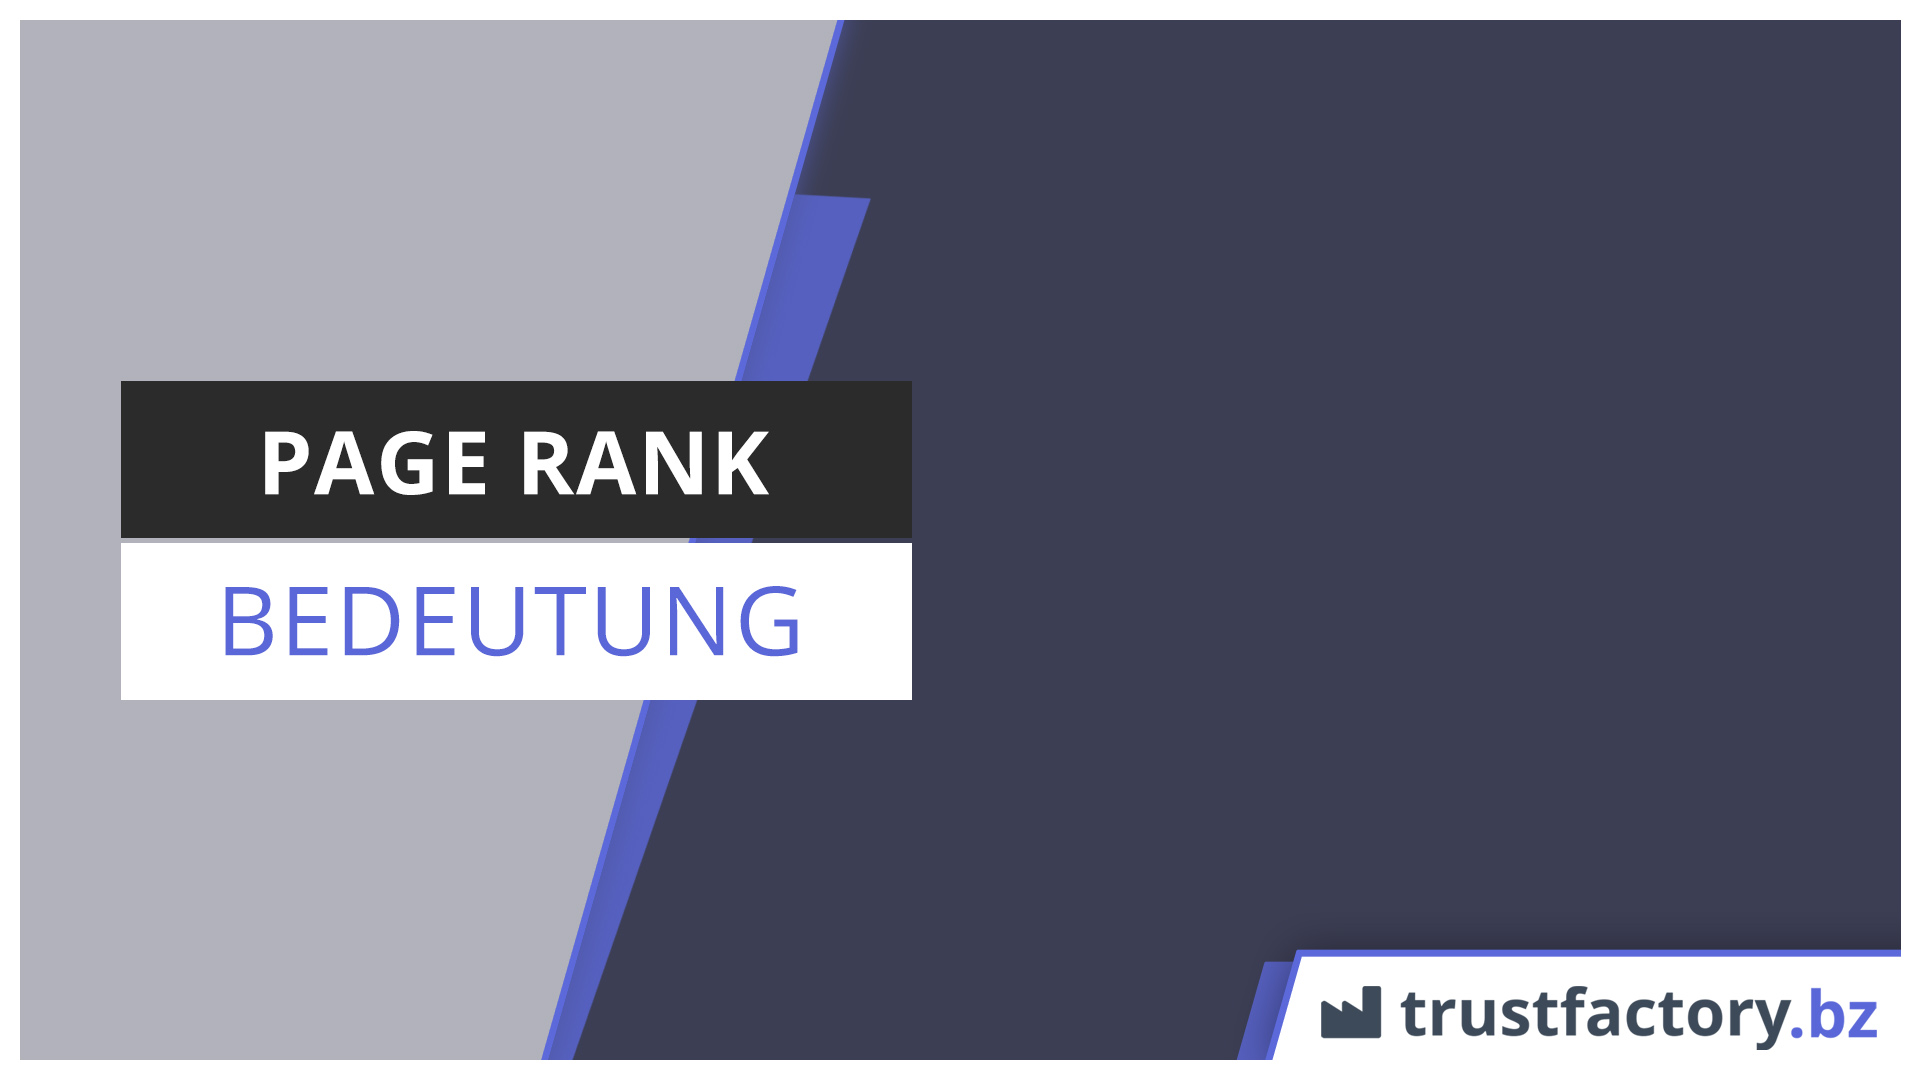 page rank bedeutung